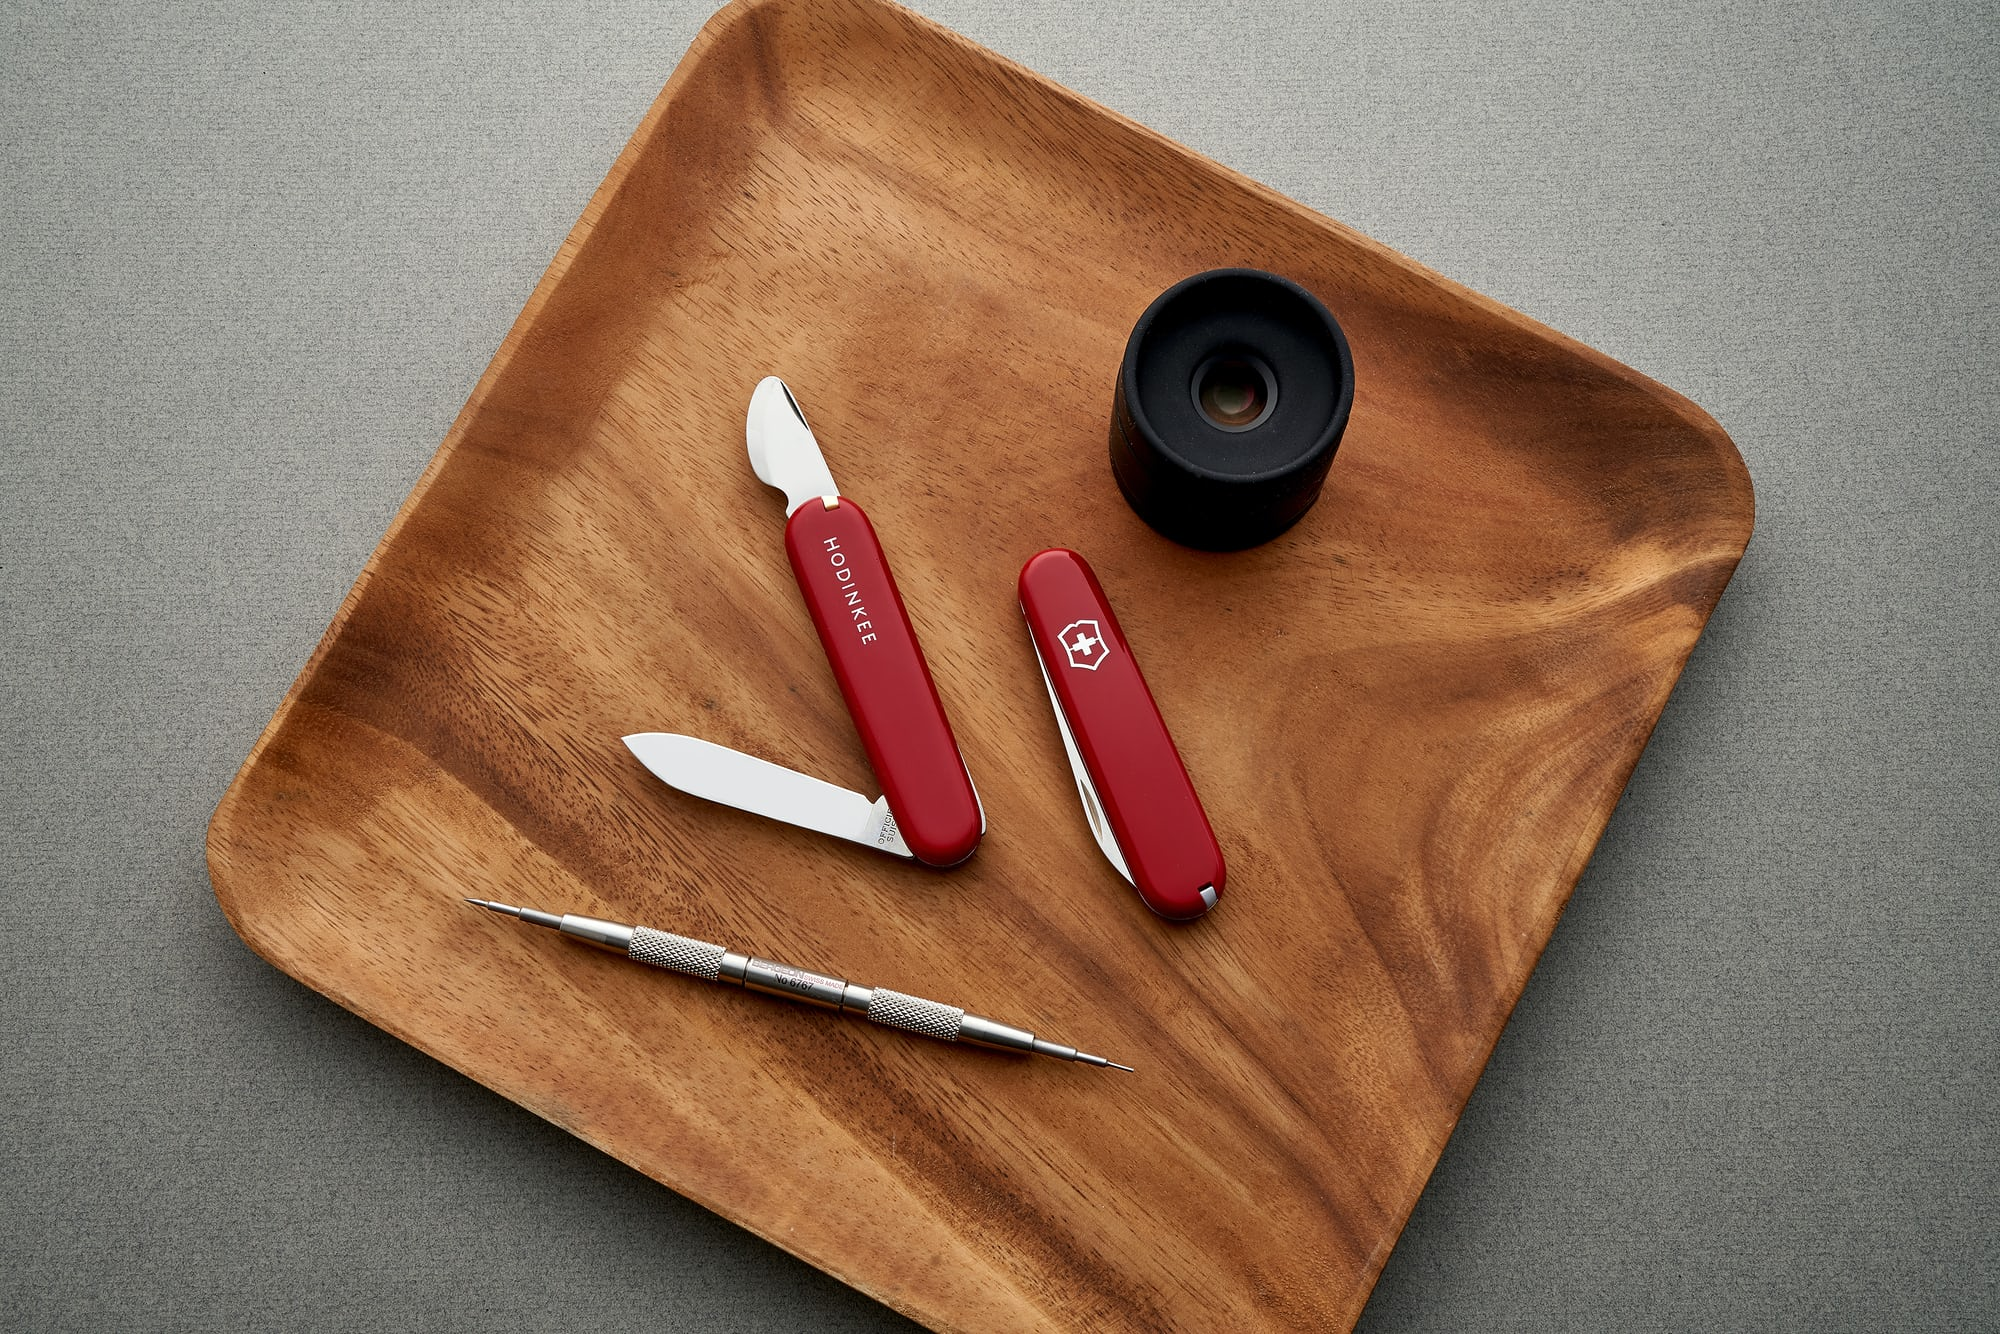 In The Shop - Introducing: The Victorinox For HODINKEE Watchmaker Swiss Army Knife